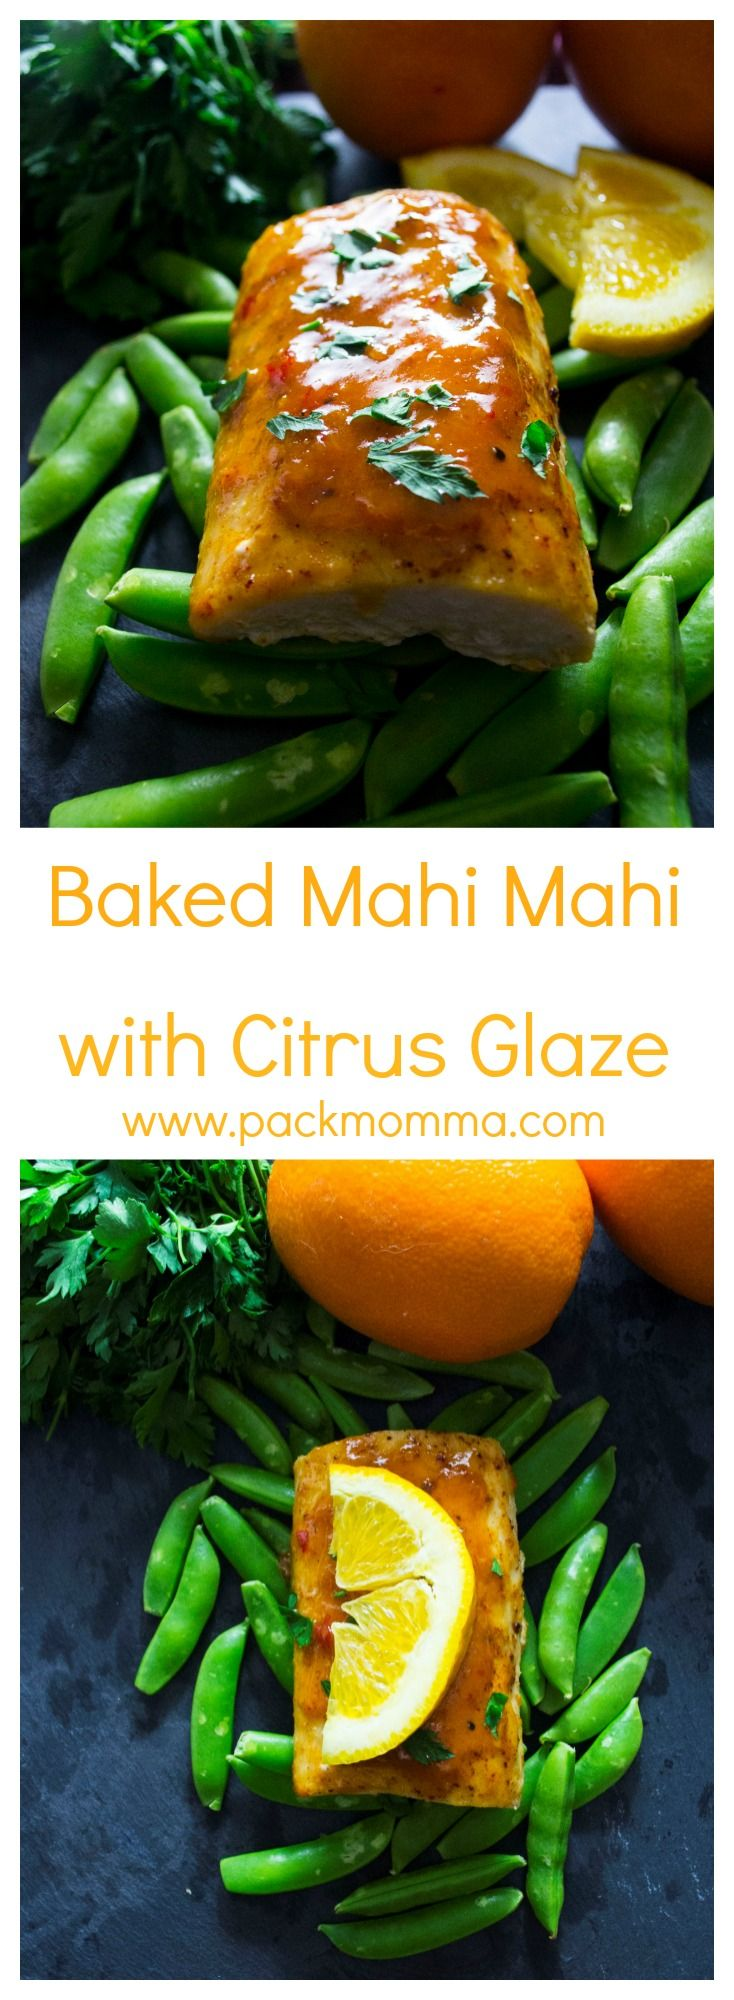 Baked Mahi Mahi with Citrus Glaze | This easy healthy dinner recipe Baked Mahi Mahi with Citrus Glaze is nutritious and delicious! | packmomma.com(Favorite Pins Healthy Dinners)